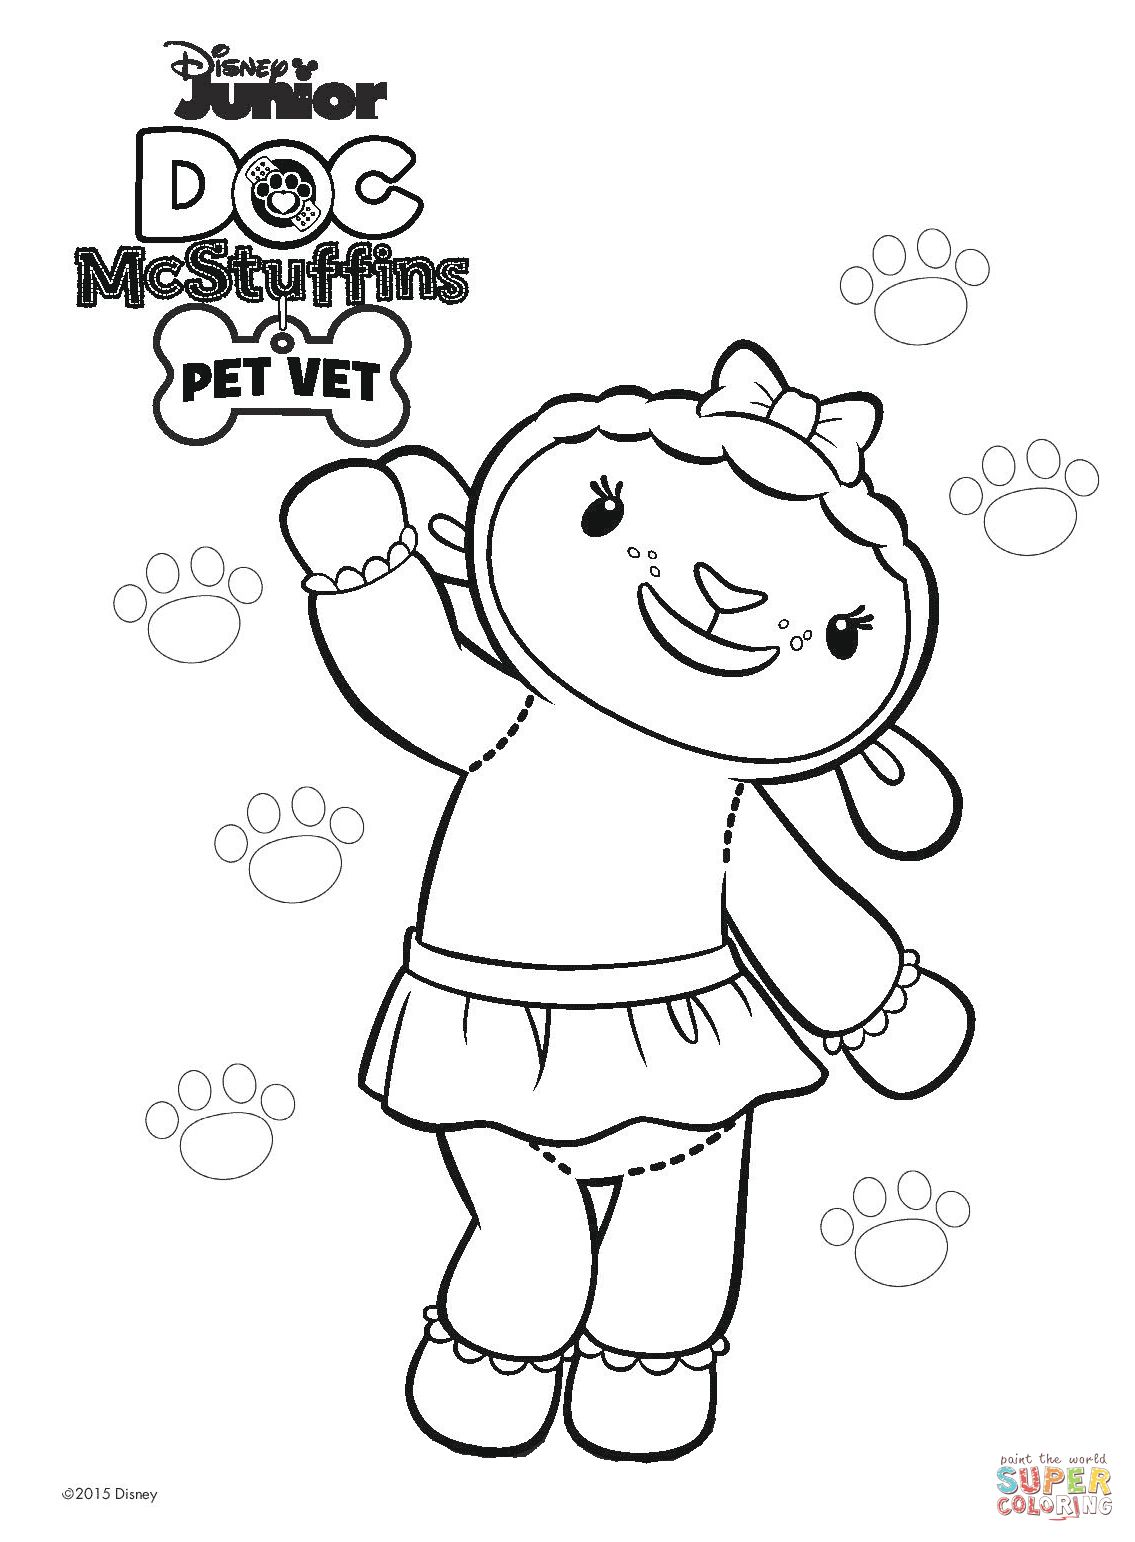 Doc Mcstuffins Coloring Pages at GetDrawings | Free download